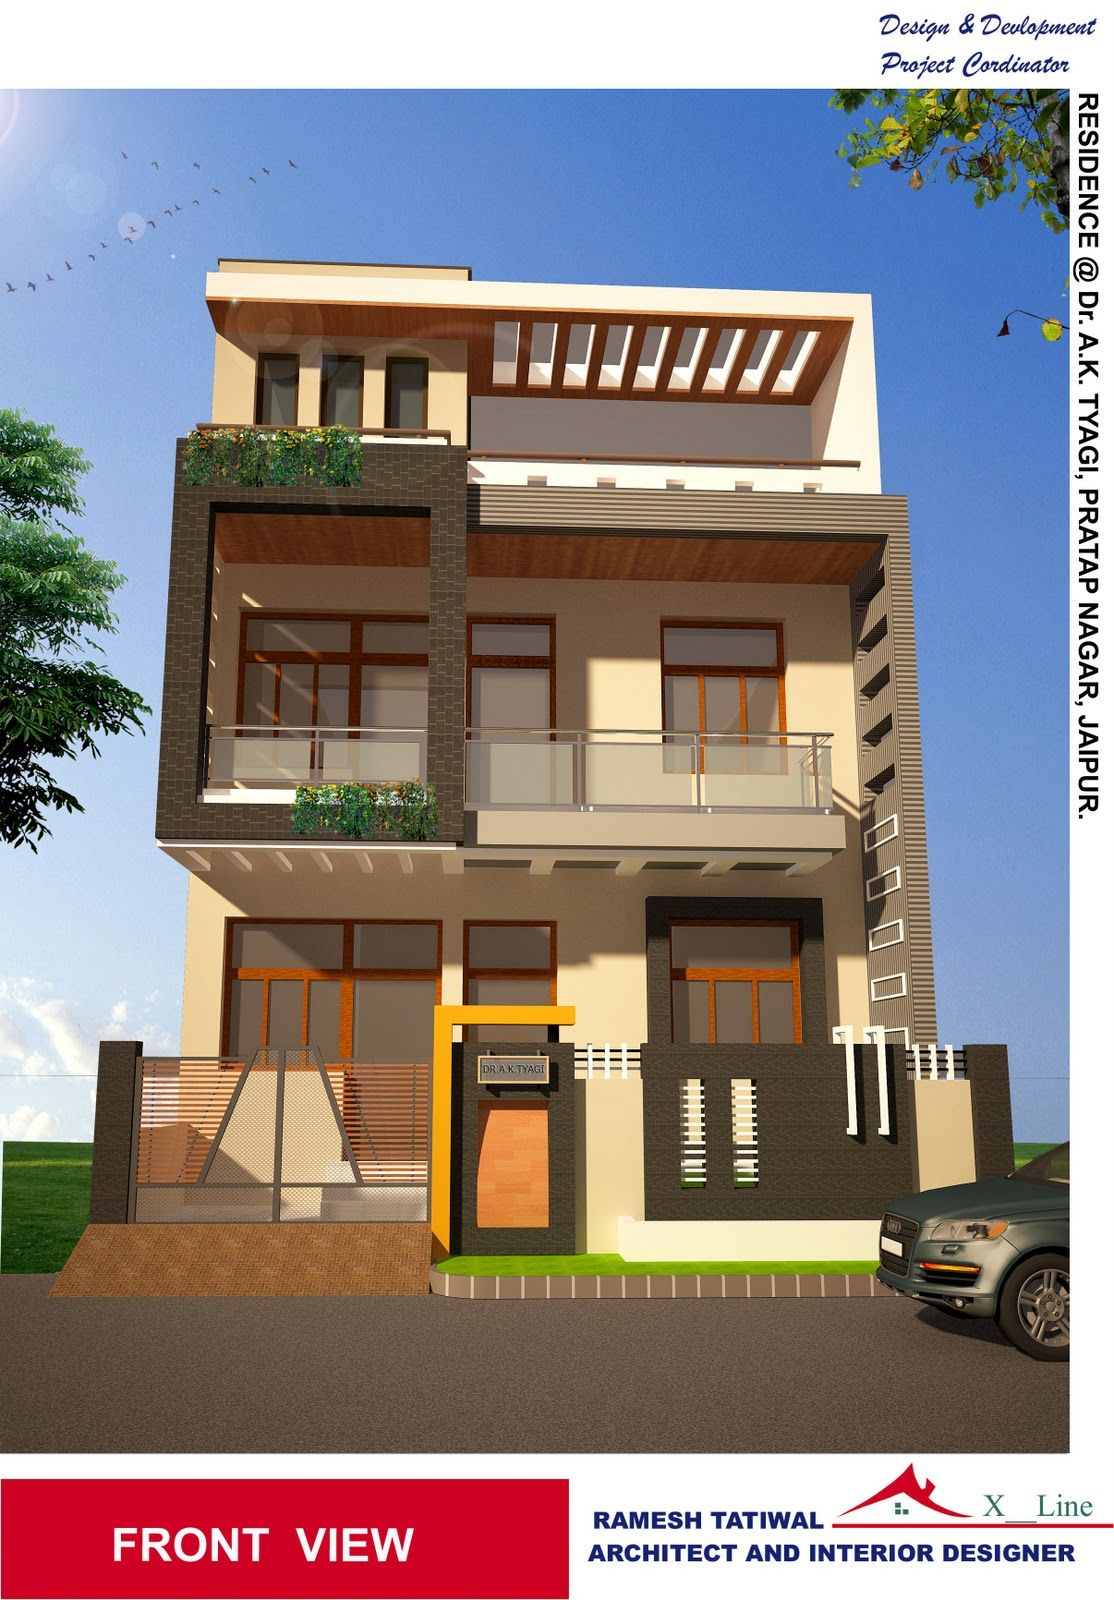 New architectural designs for Indian home design photos exterior